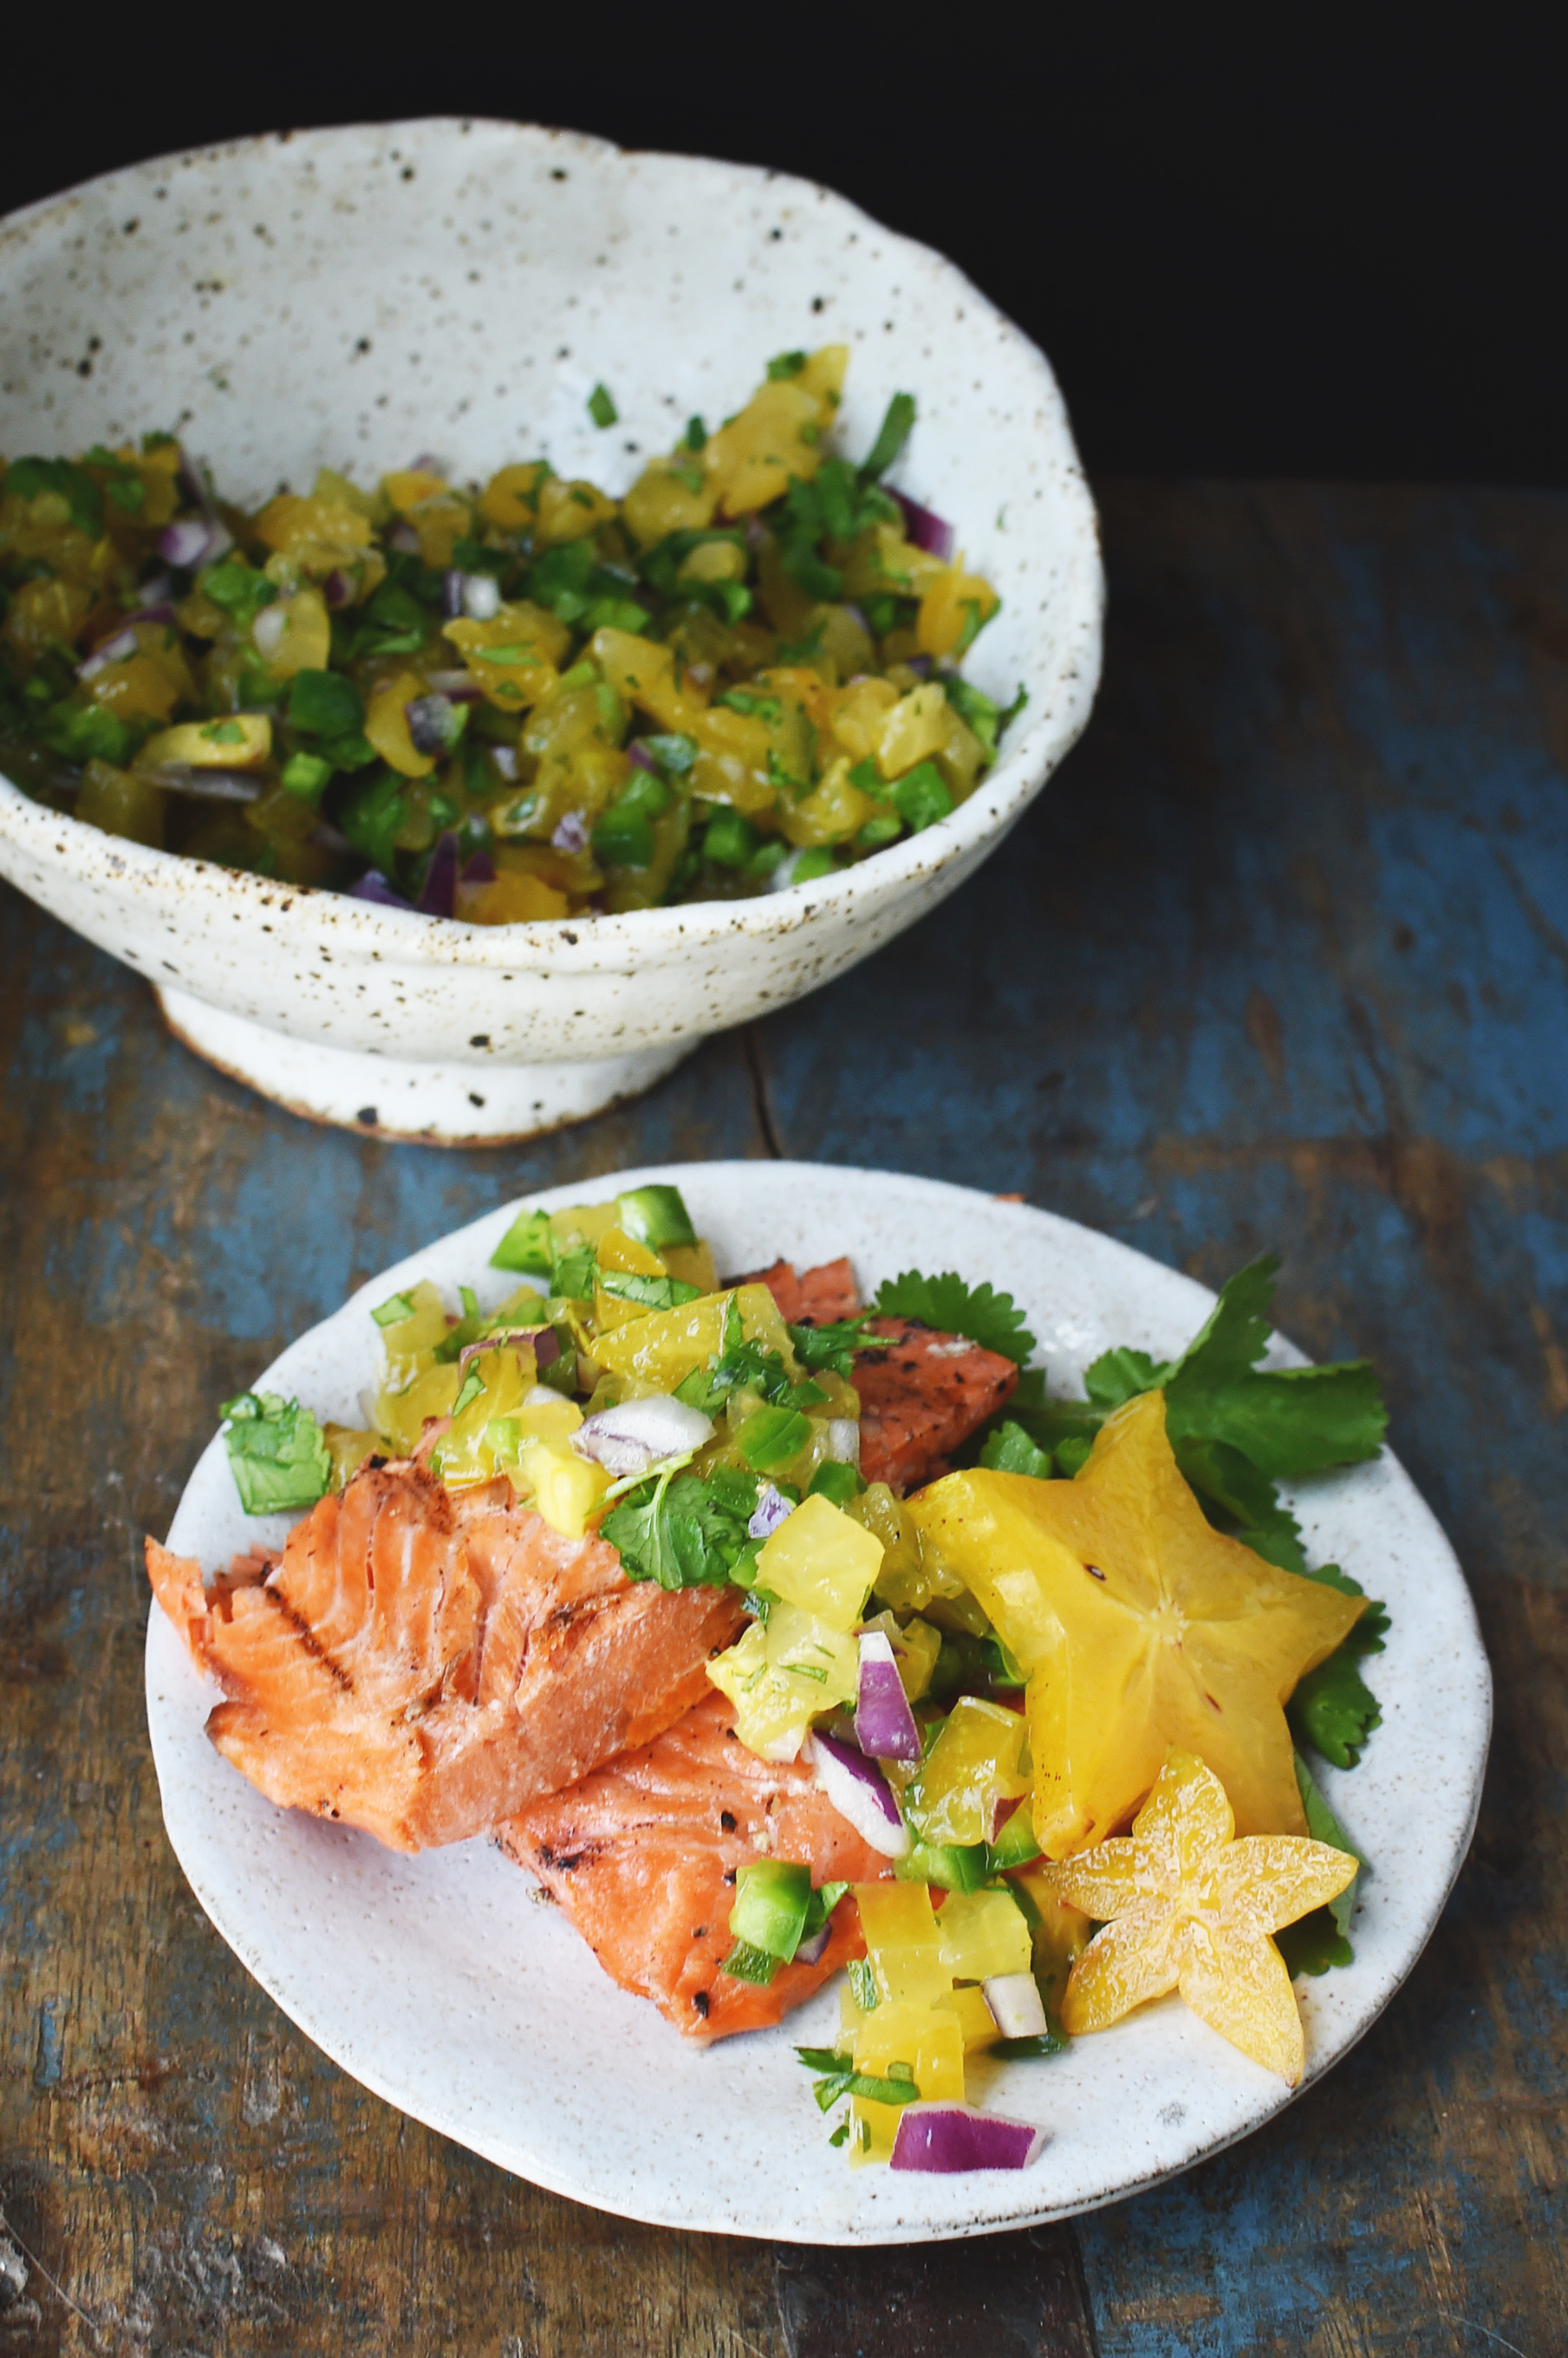 Low-Carb Salmon with Starfruit Salsa served on a plate.